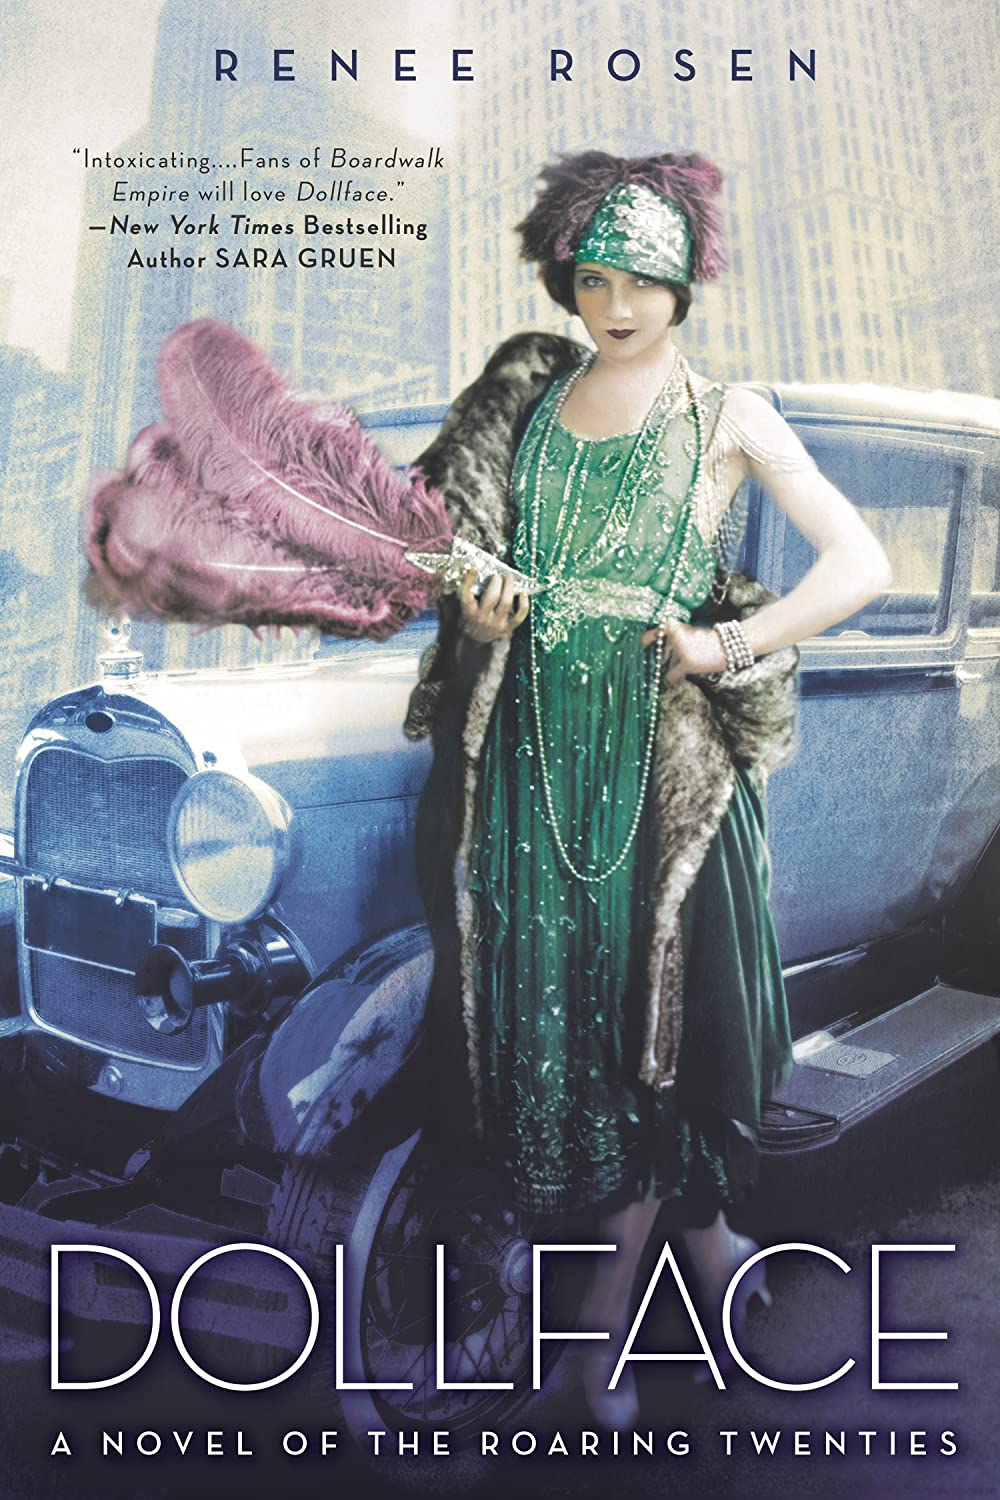 Dollface: A Novel of the Roaring Twenties Renee Rosen